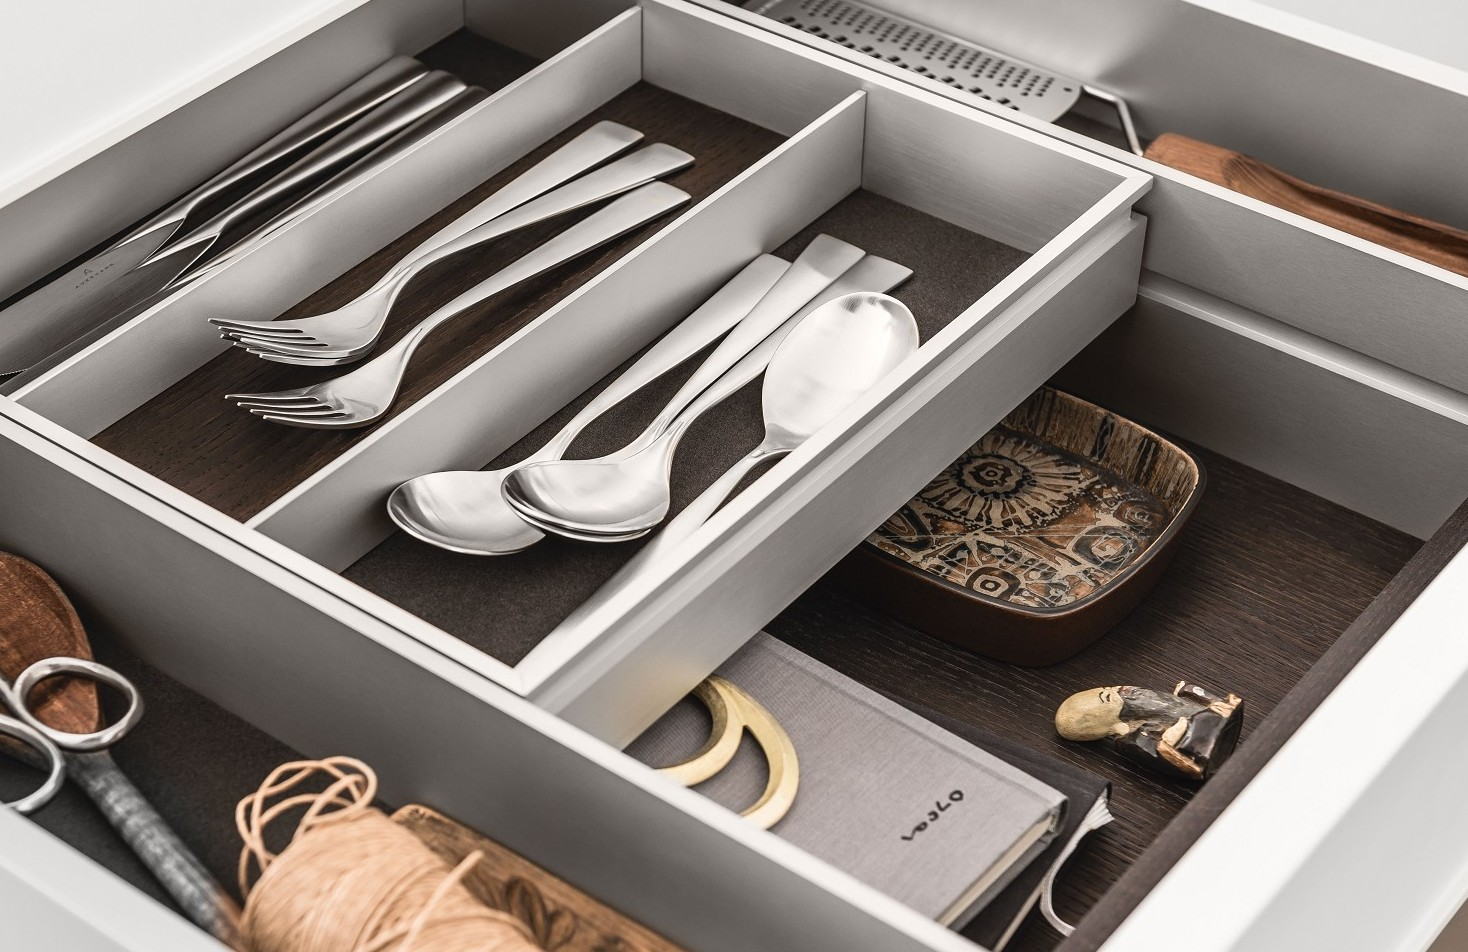 A bi-level drawer elegantly doubles storage space in SieMatic kitchen drawers